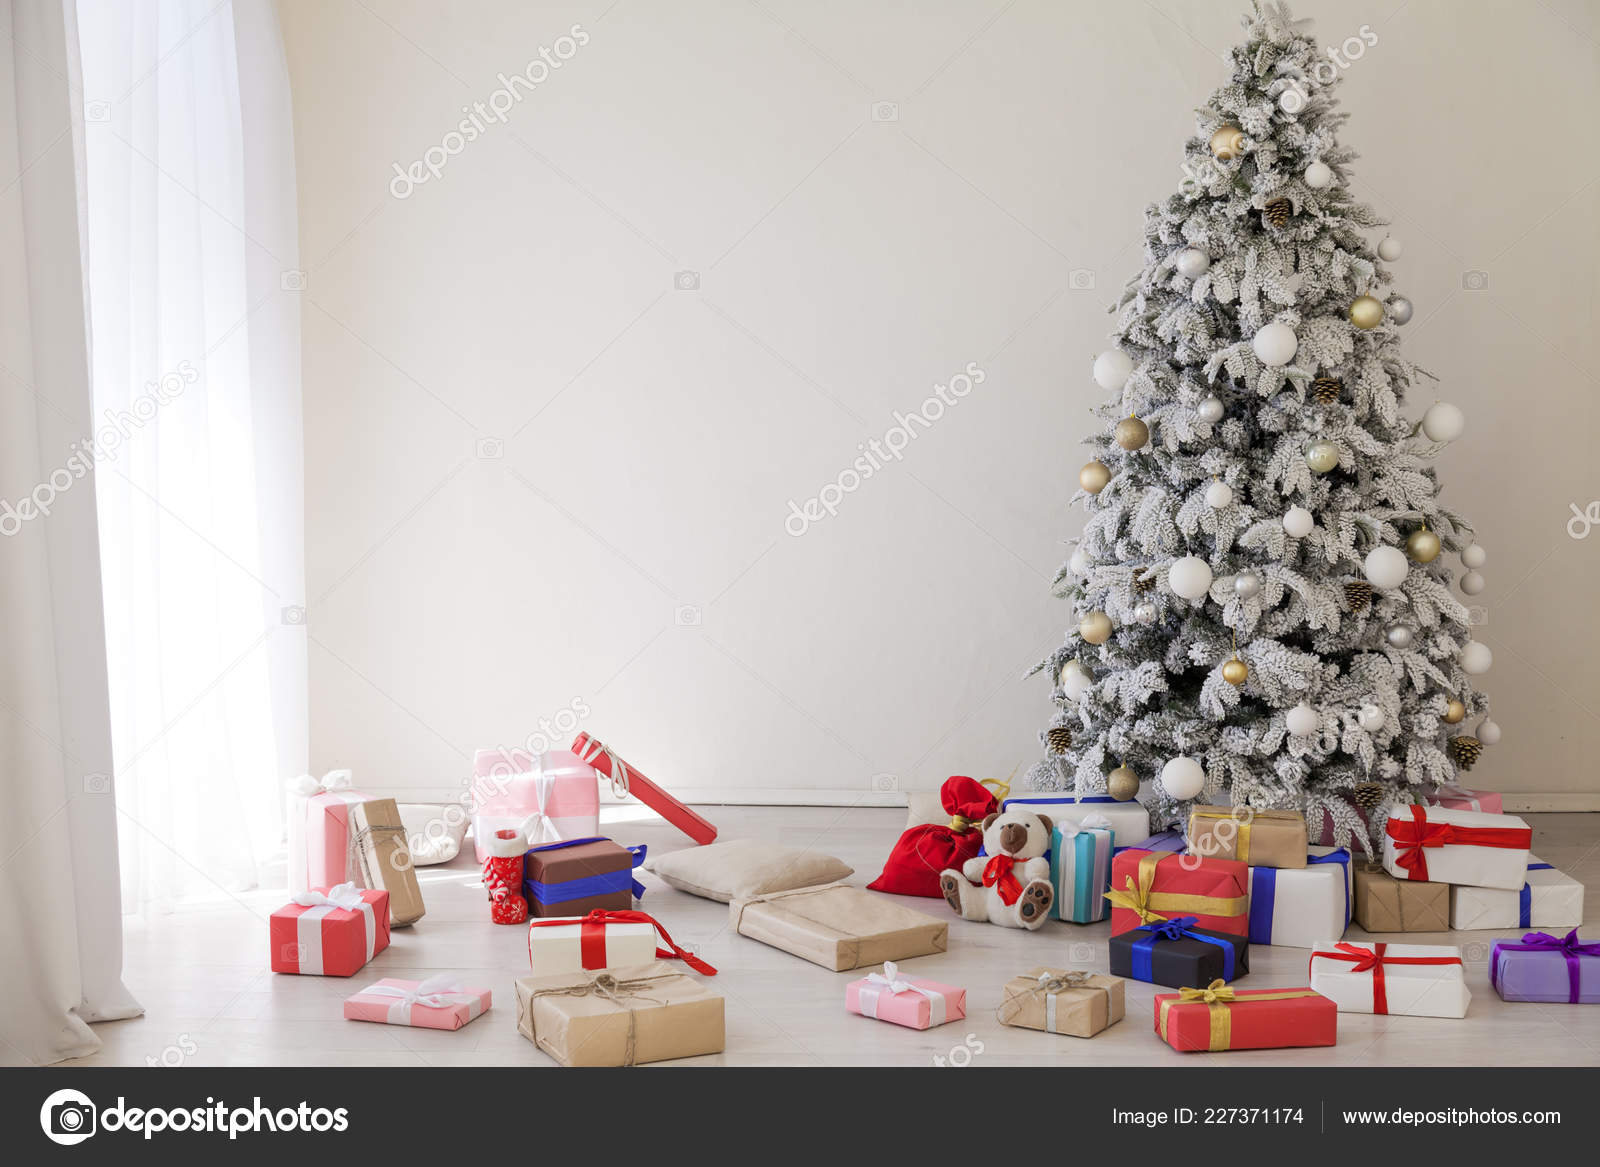 new year House Christmas tree holiday gifts happiness — Stock Photo ...